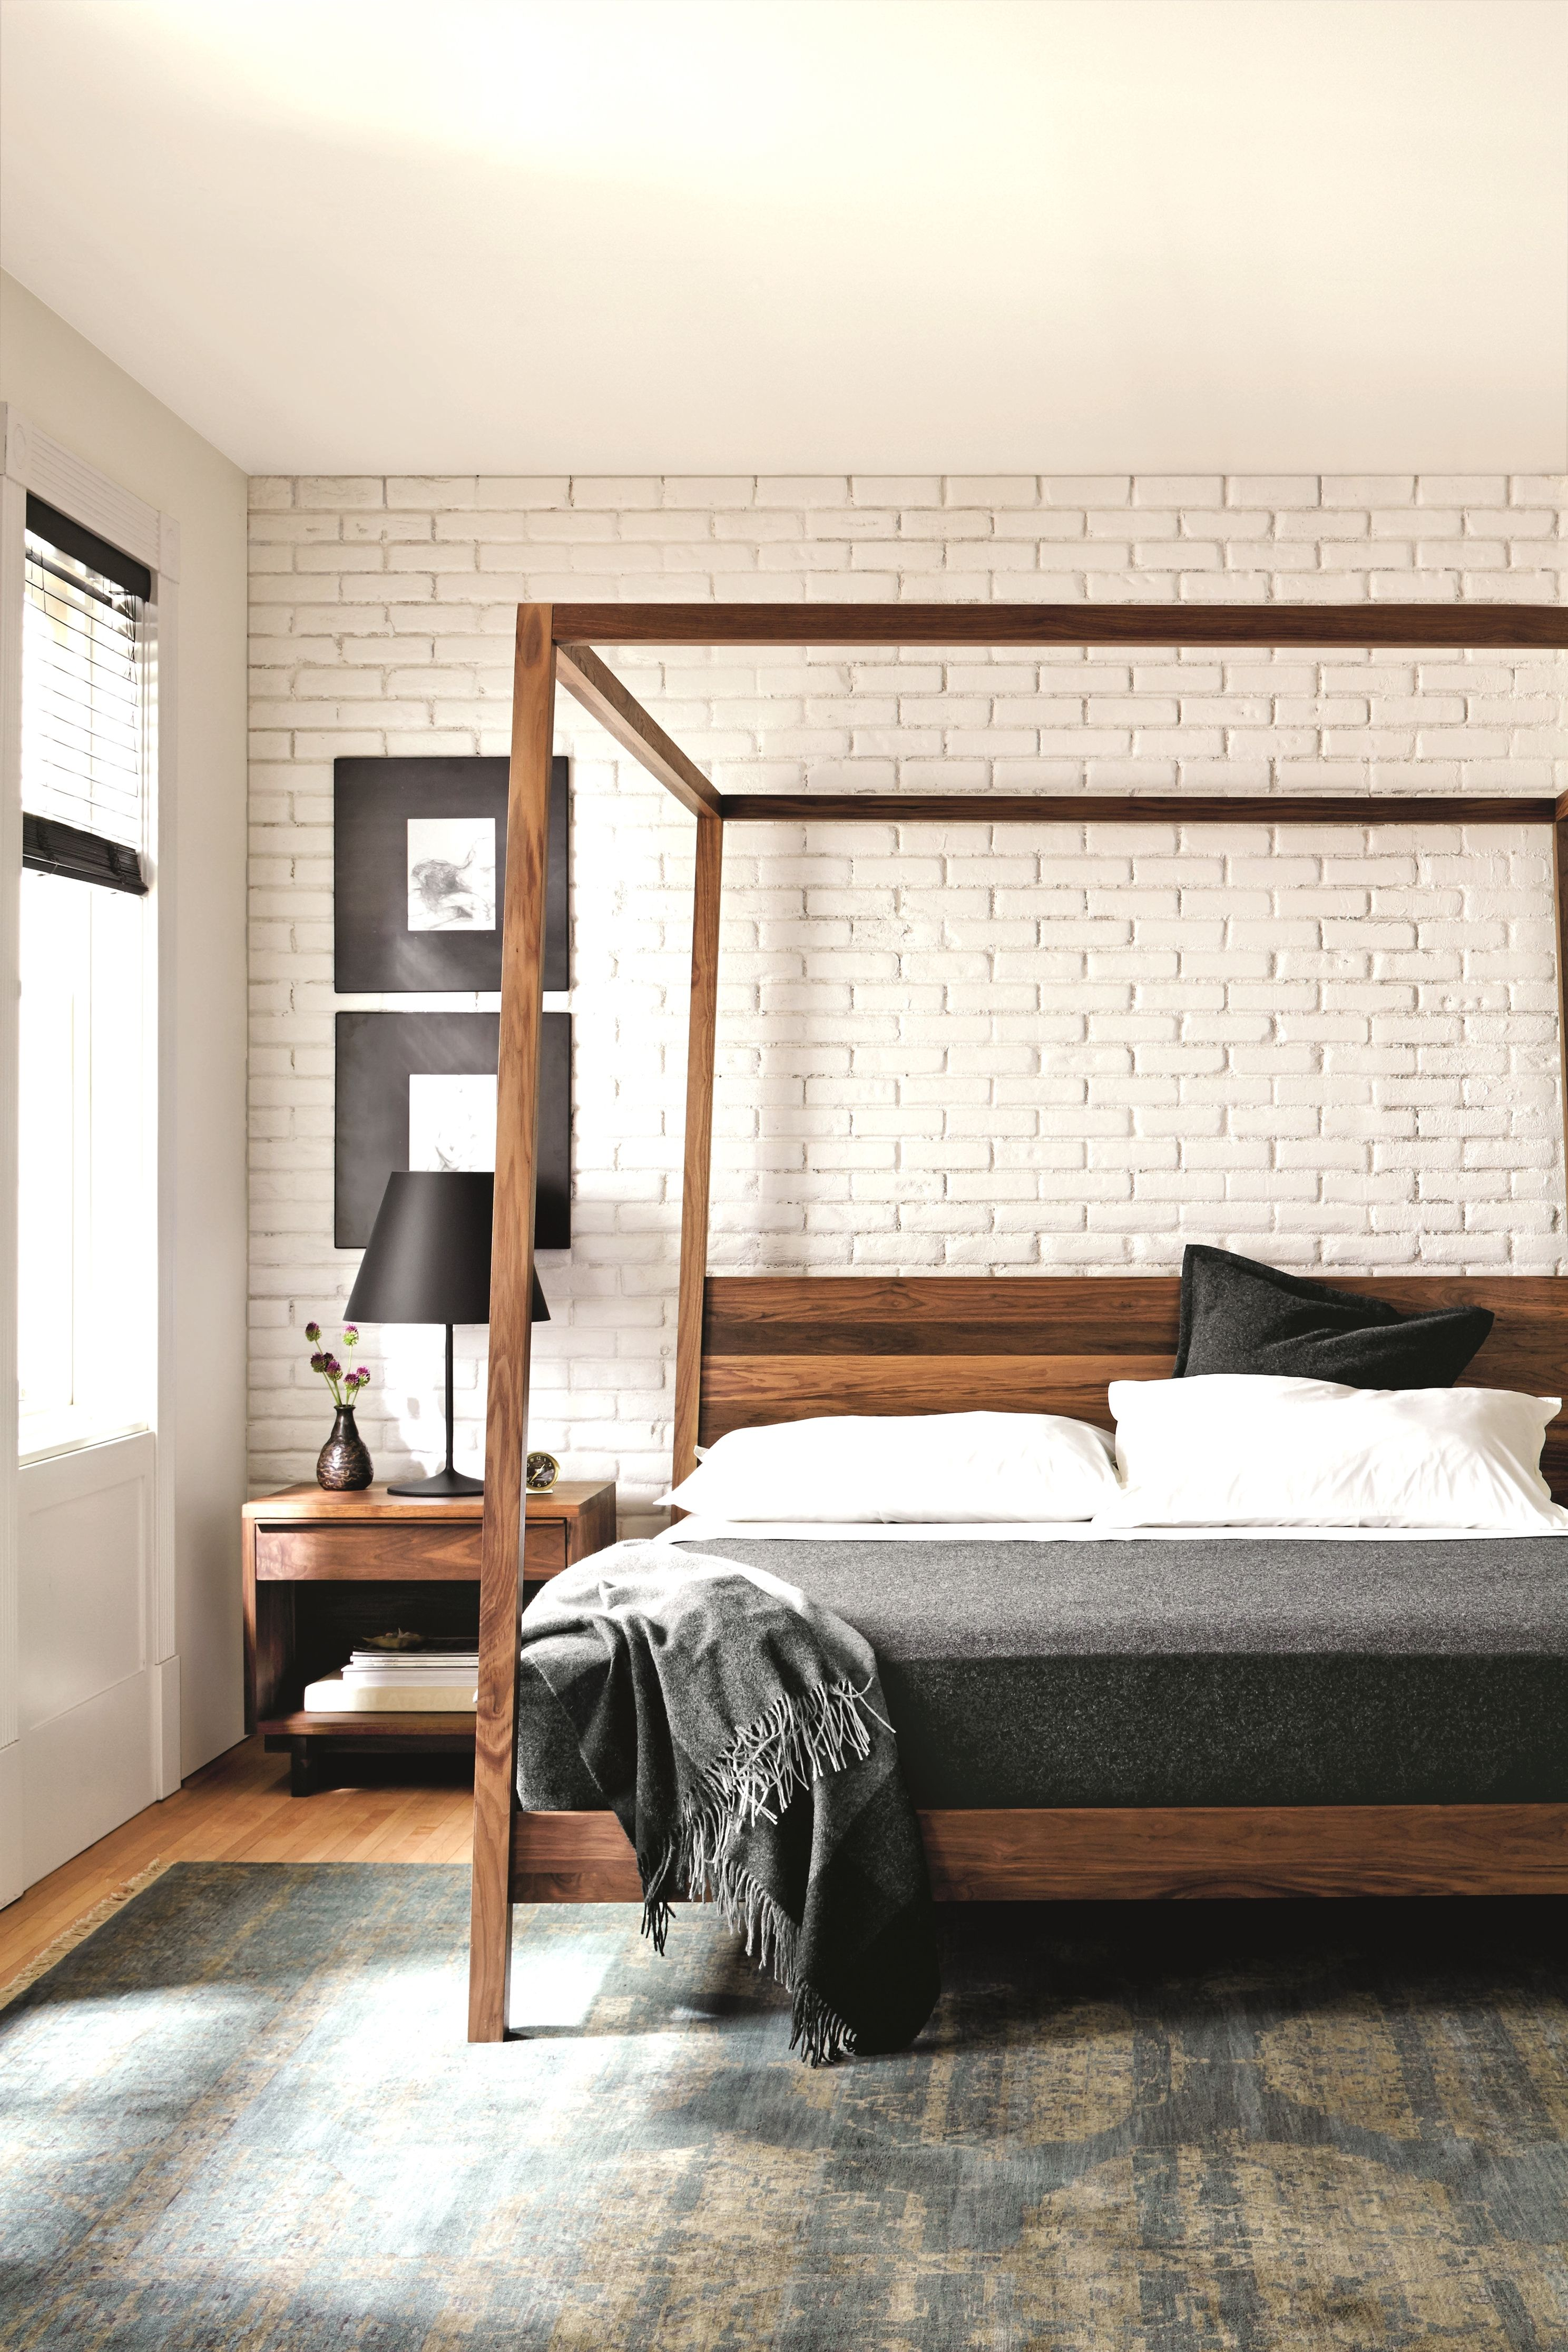 White washed brick plements a minimal wooden bed frame in this sleek simple space BedFrame